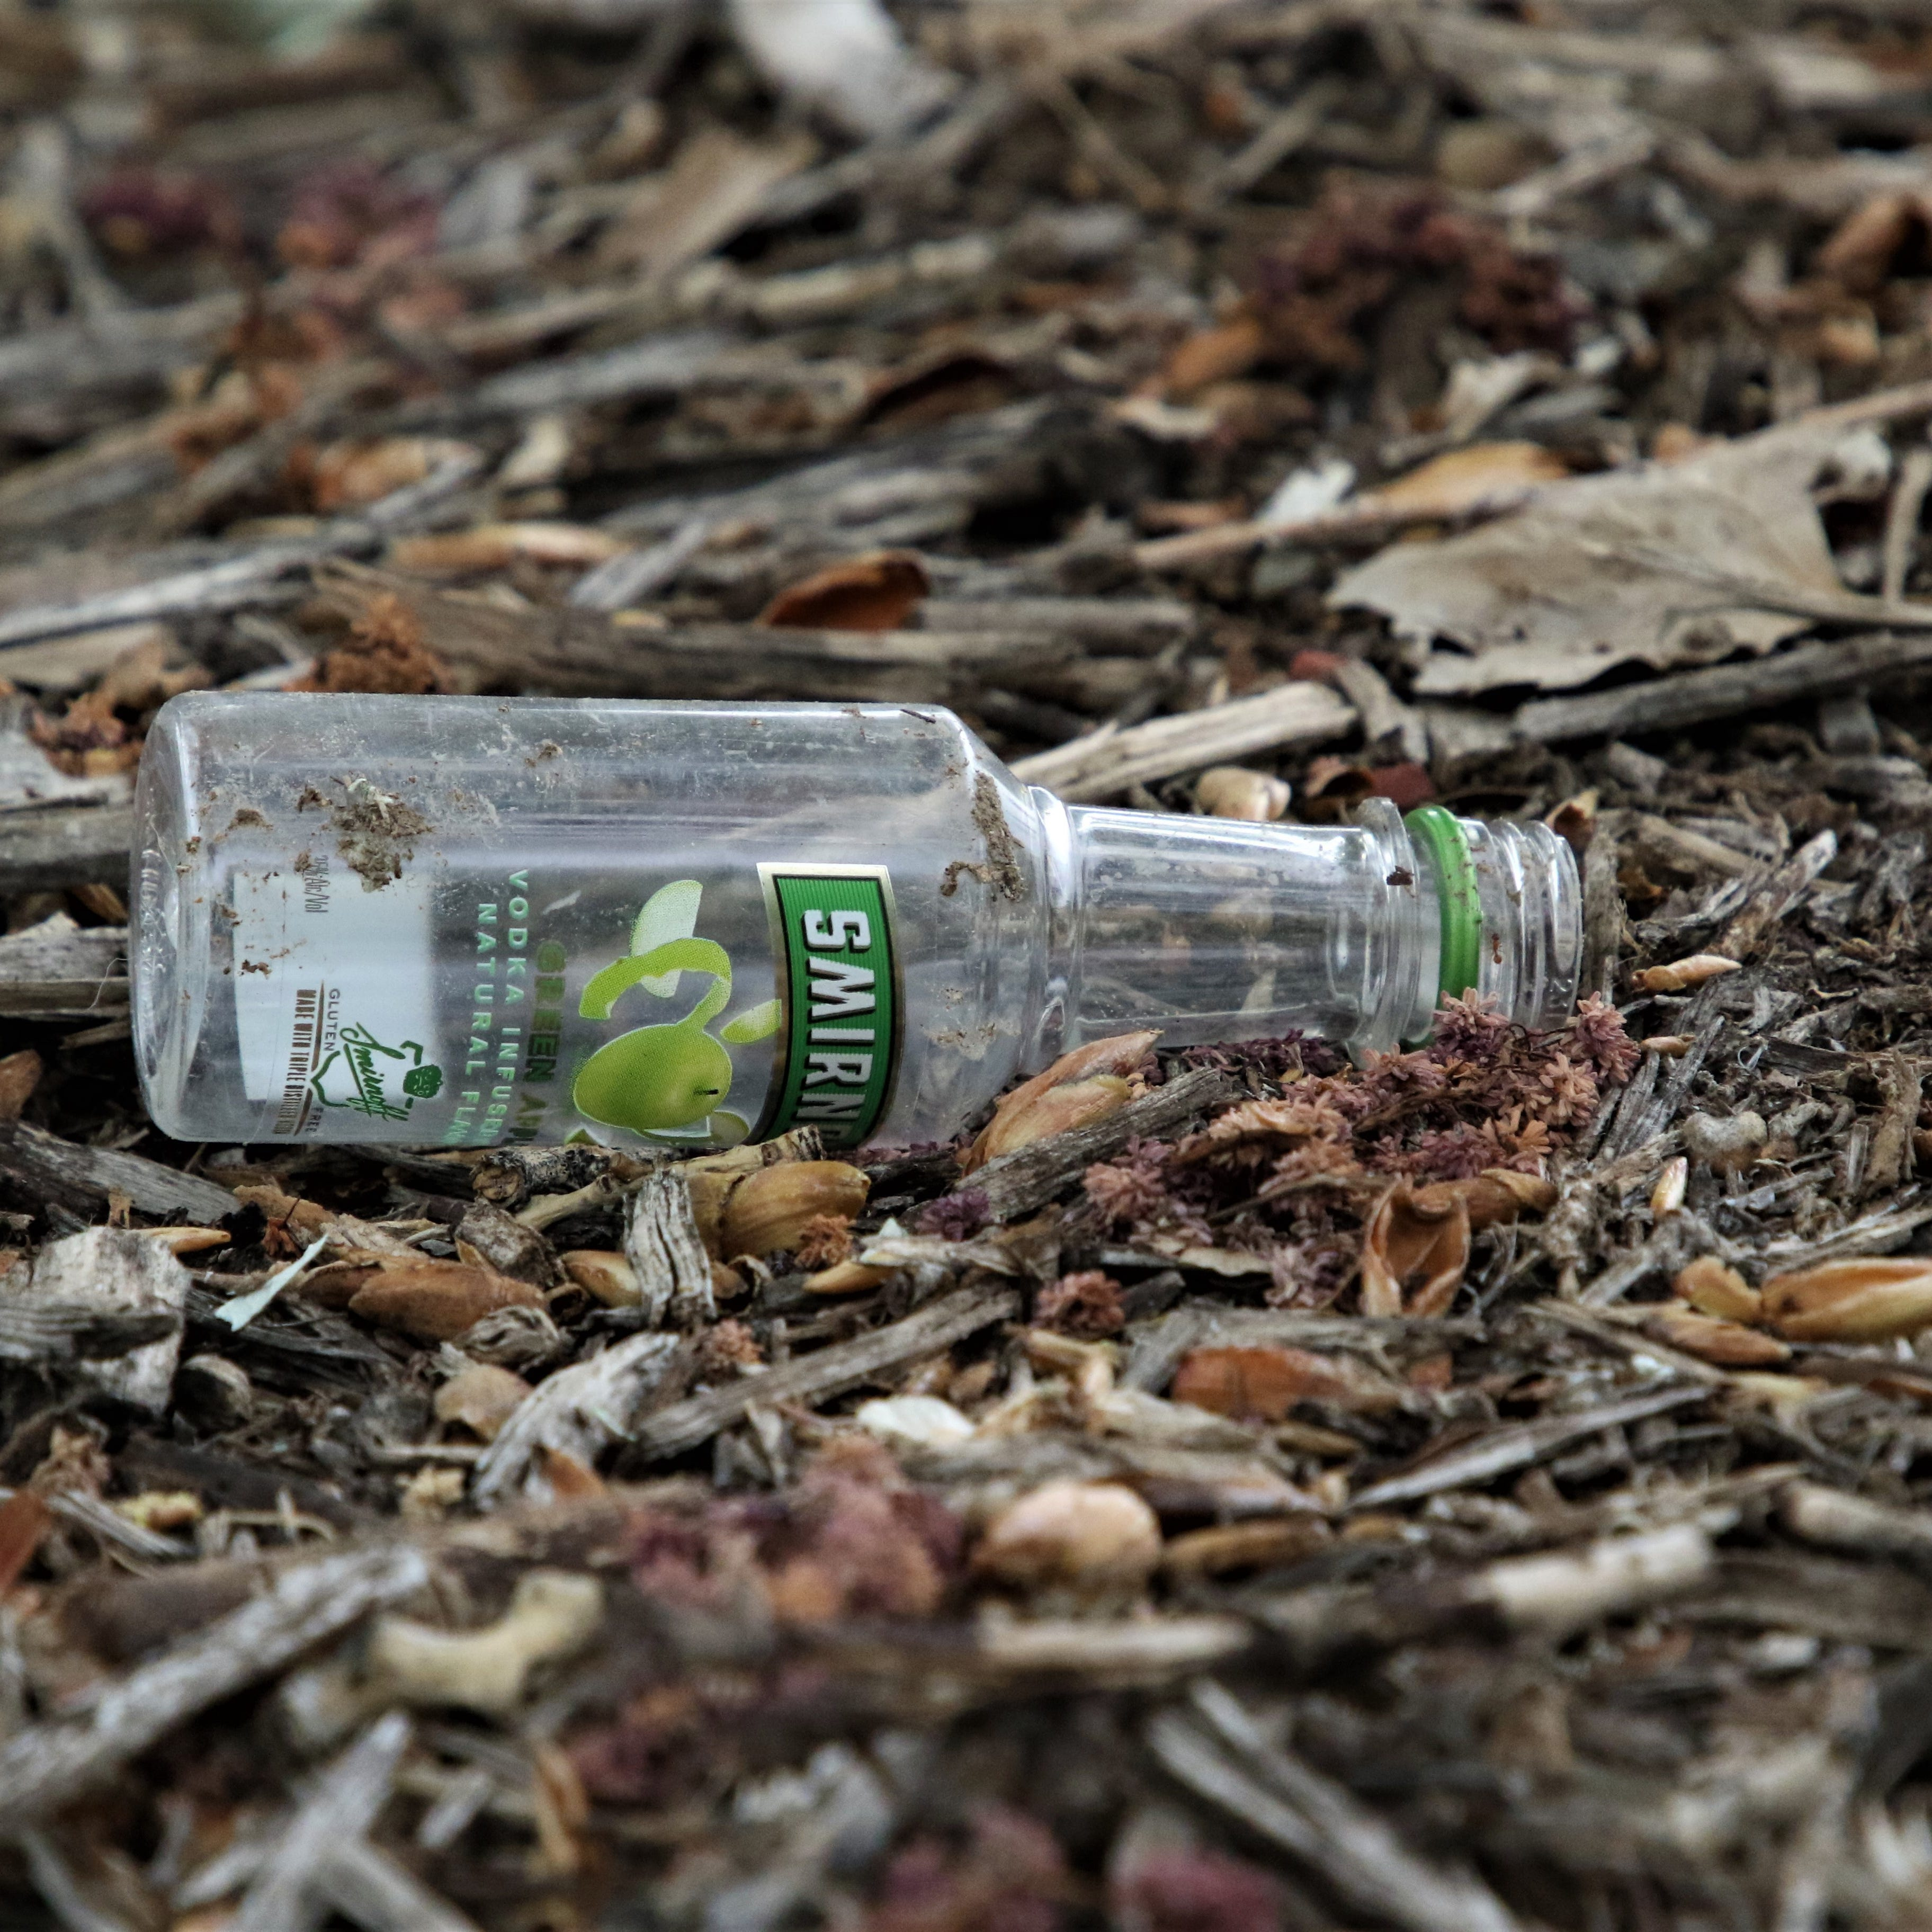 Mini alcohol bottles litter Farmington streets, parks. The mayor has proposed a sales ban.